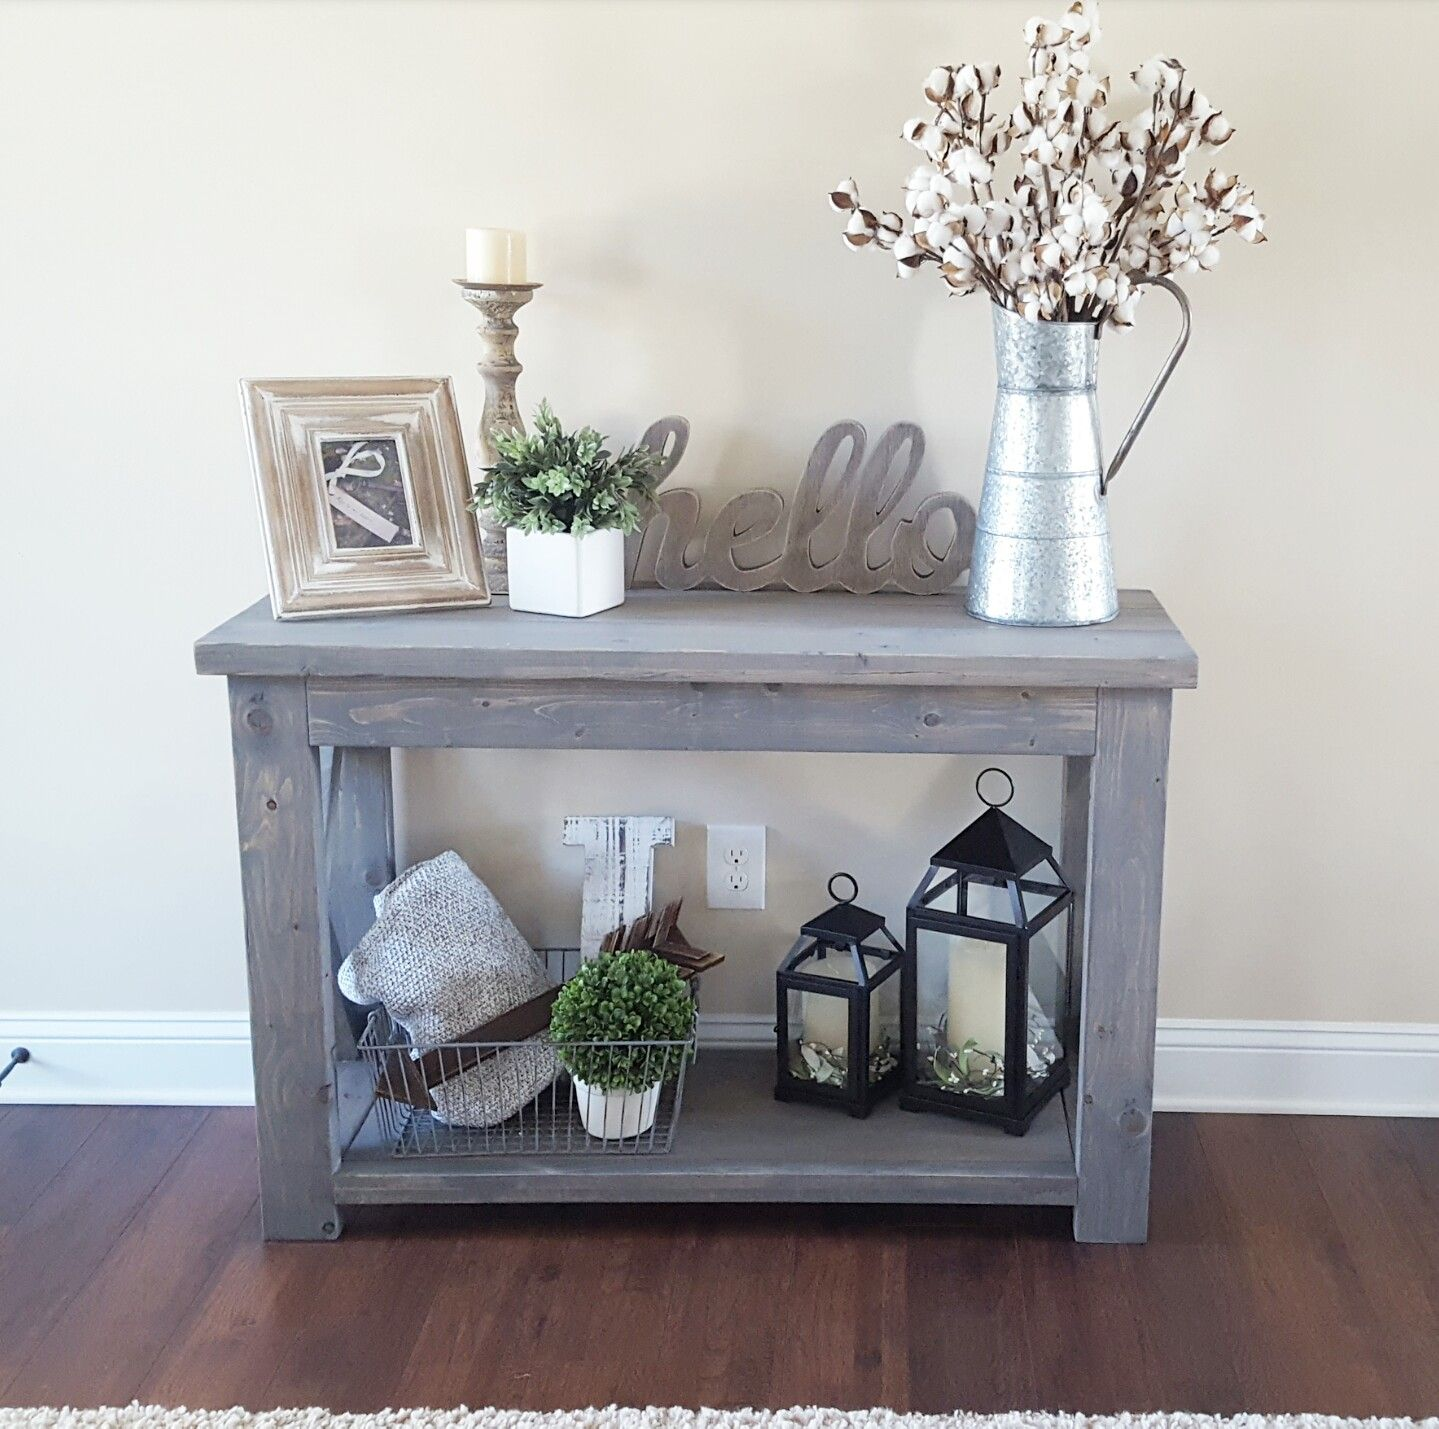 Modified Ana White S Rustic X Console Table And Used Minwax Classic Gray Stain Sofa Table Decor Decor Home Decor